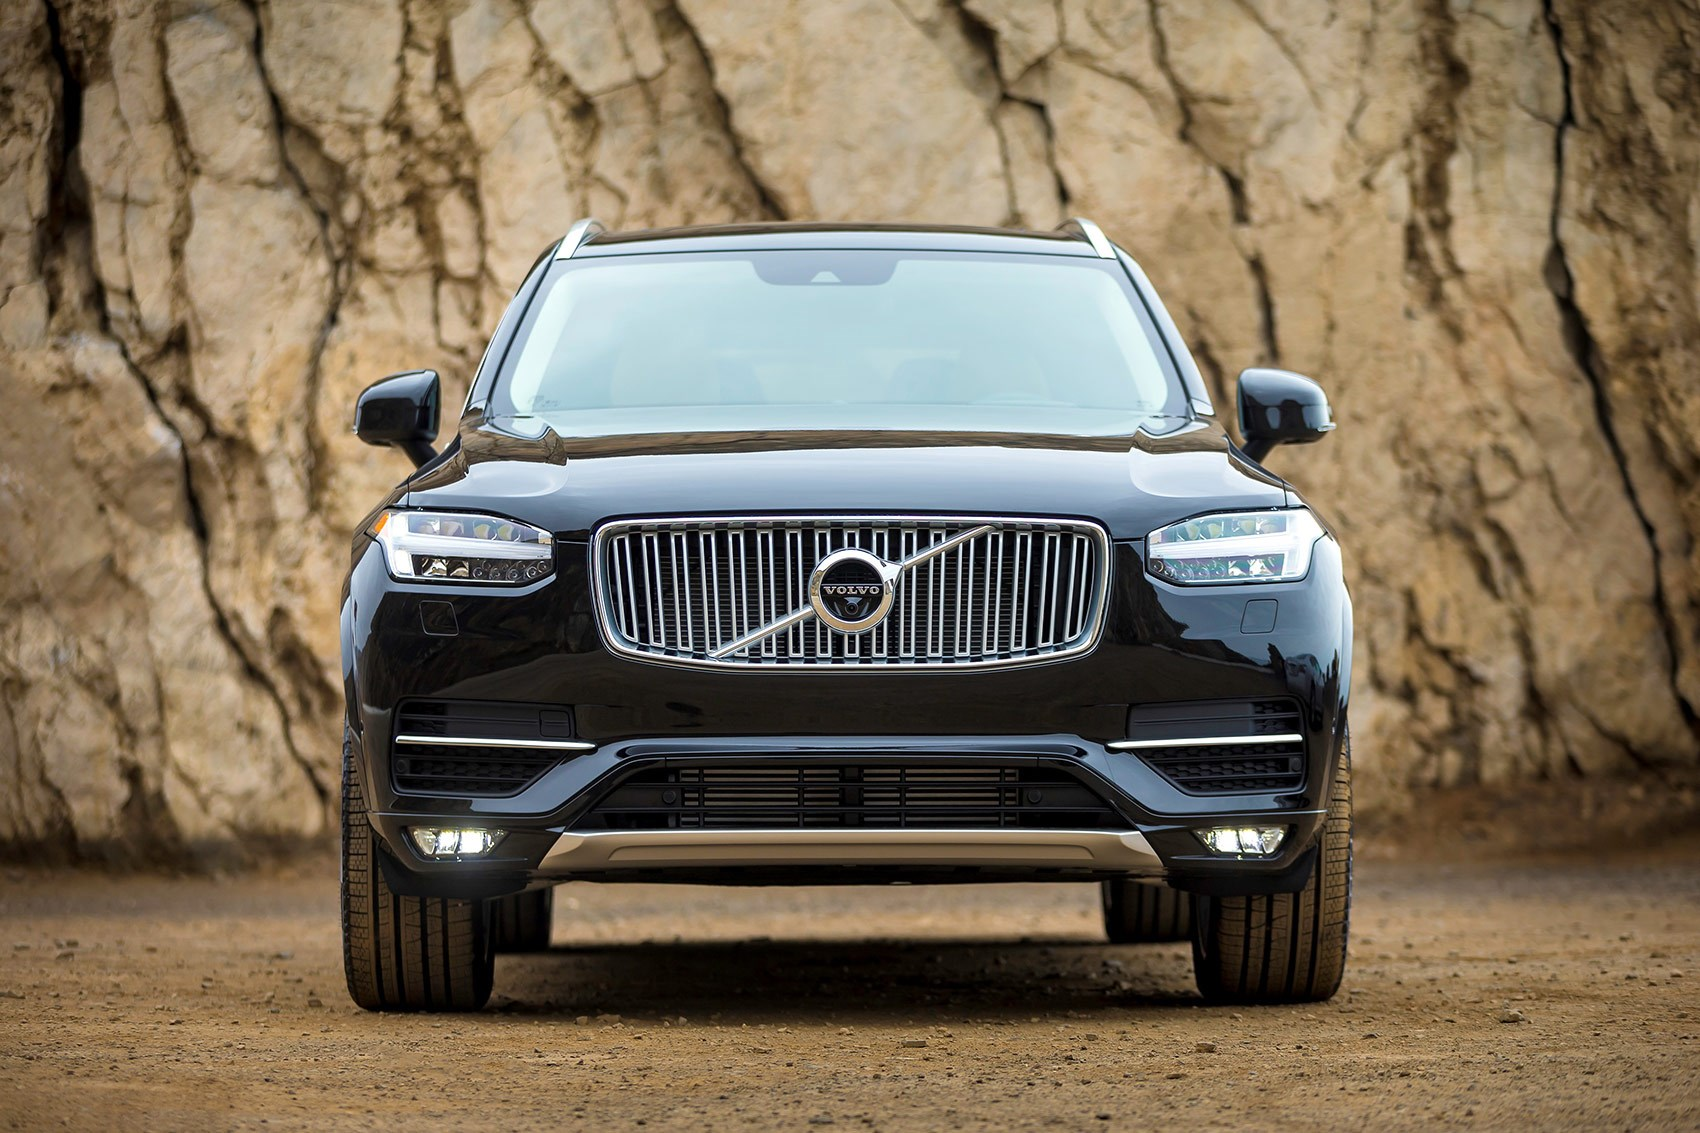 Cur Xc90 Was First Model To Launch On Volvo S Spa Platform New One Will Be Electrified Only